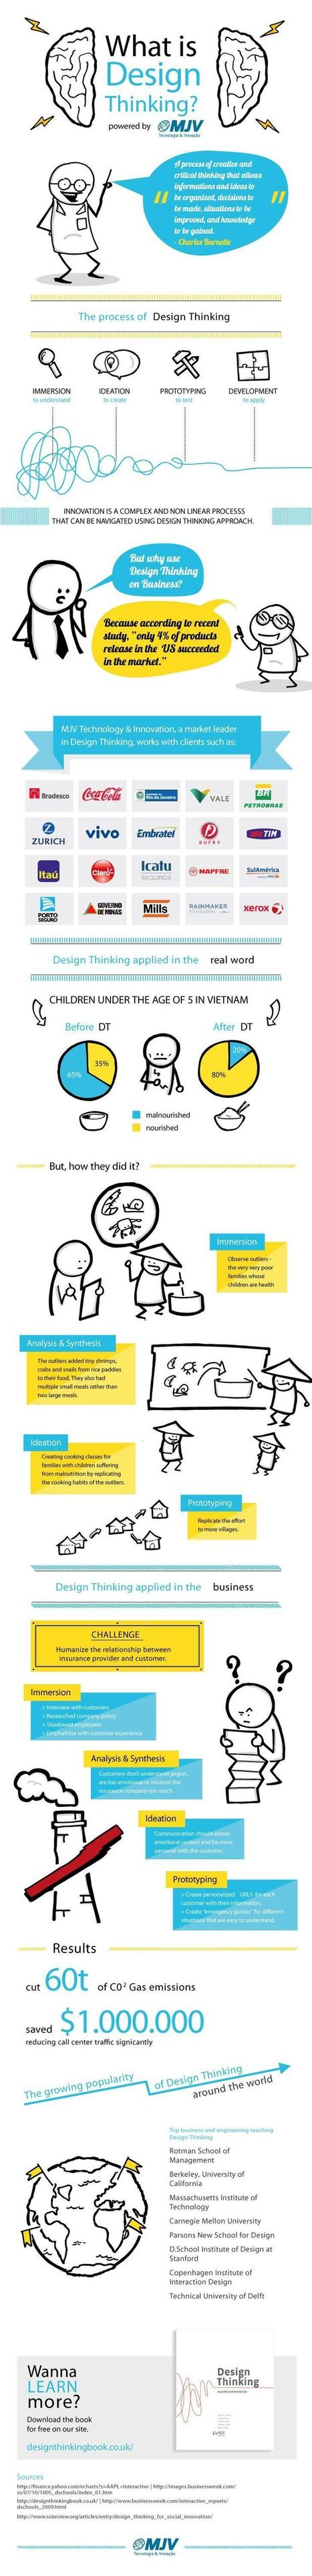 Pin by Funcustic on Design thinking | Pinterest | Communication design | Scoop.it